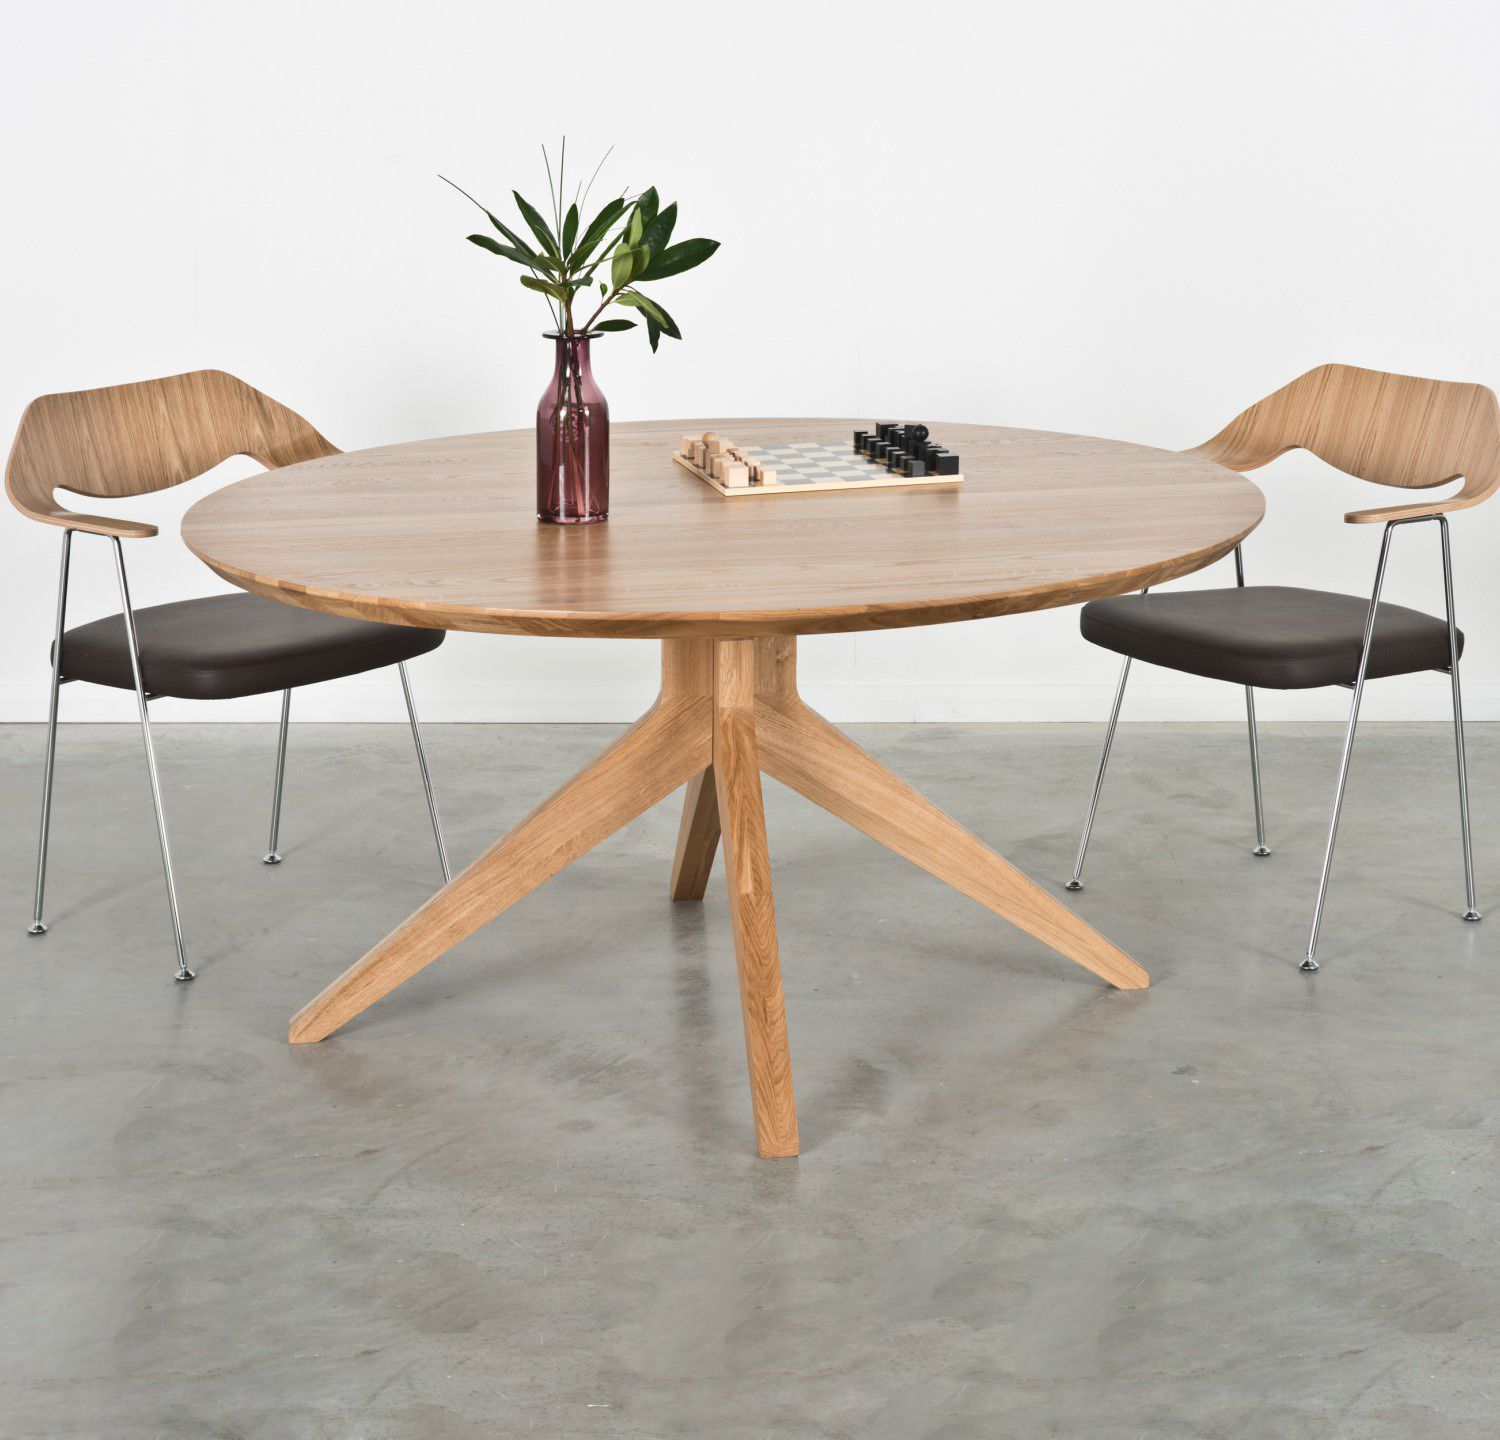 Contemporary dining table wooden round rectangular CROSS